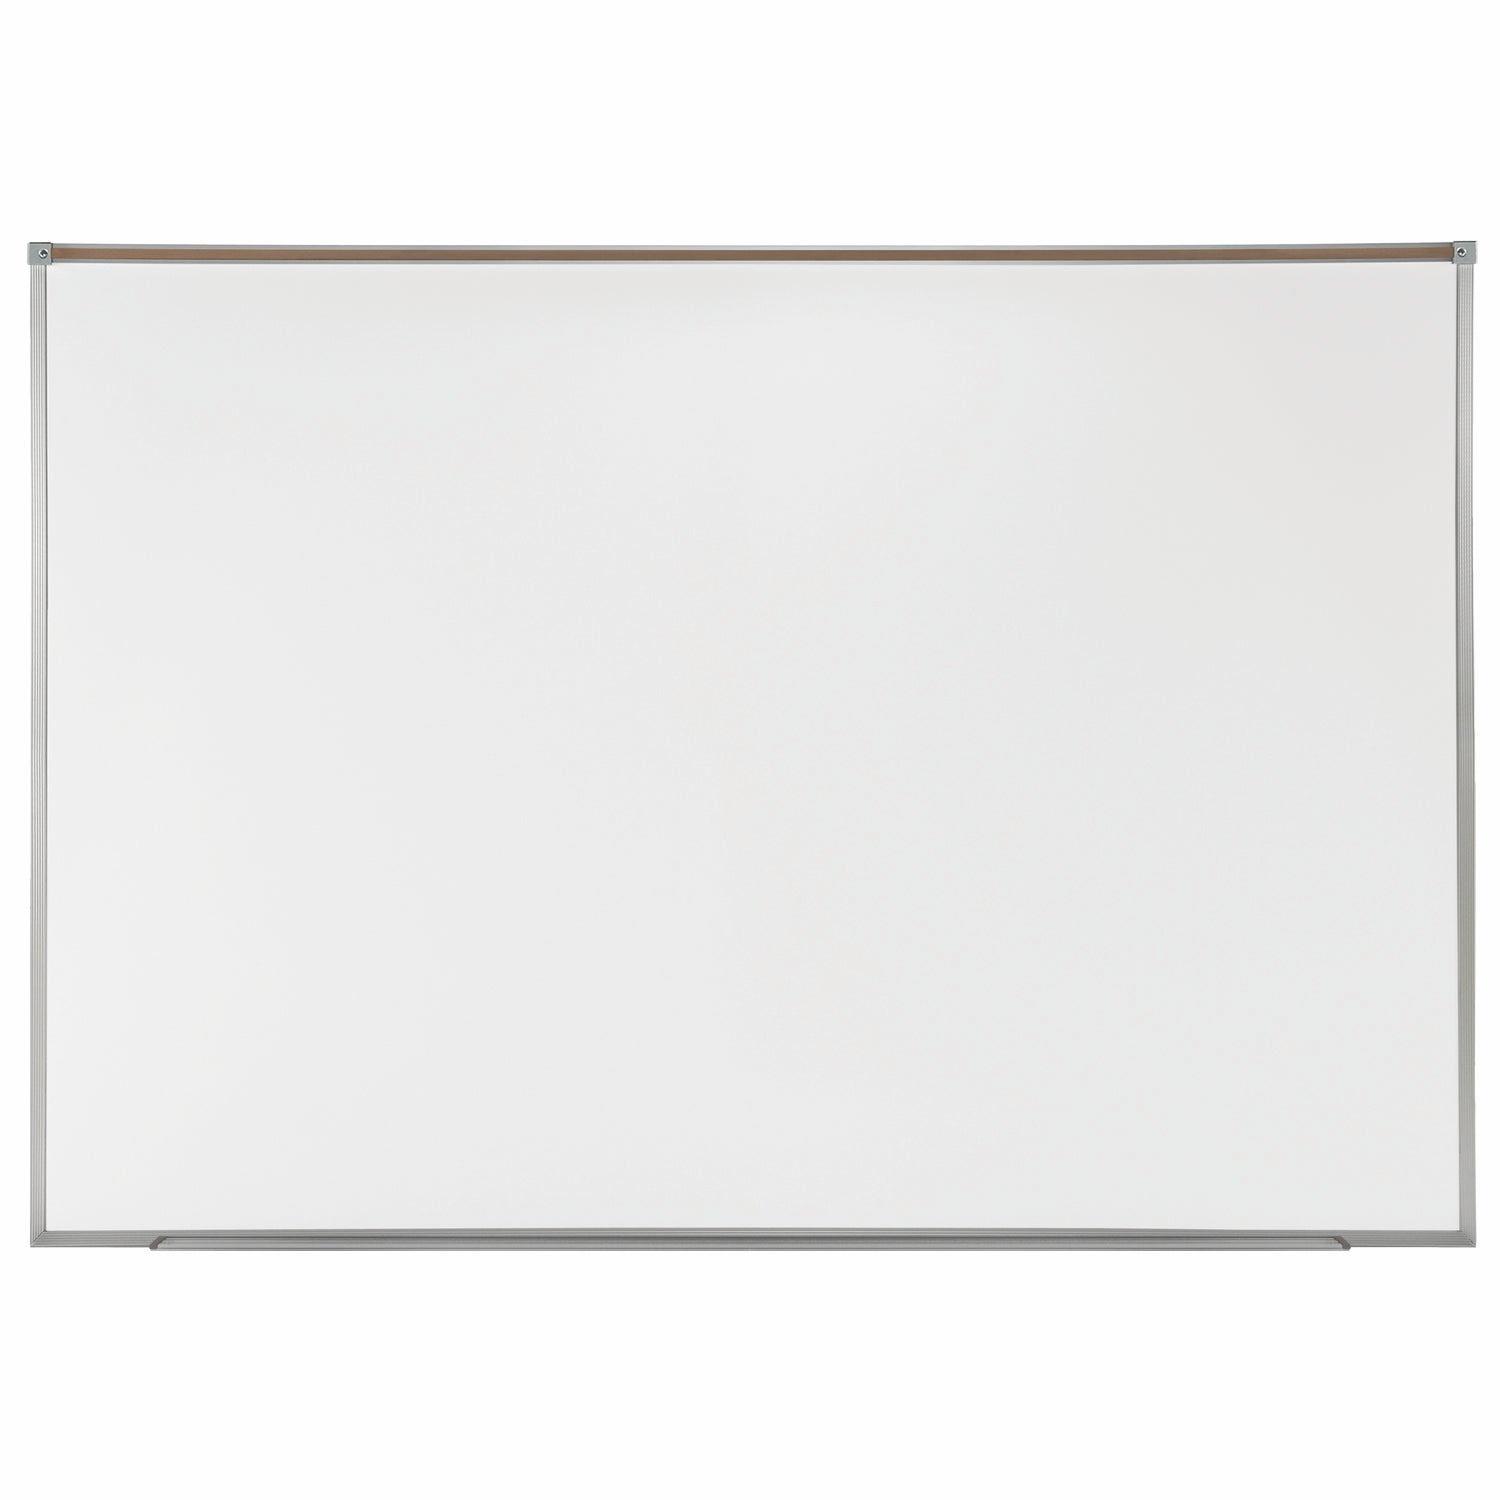 "Ghent Aluminum Frame Porcelain Magnetic Projection Whiteboard With 1"" Maprail"